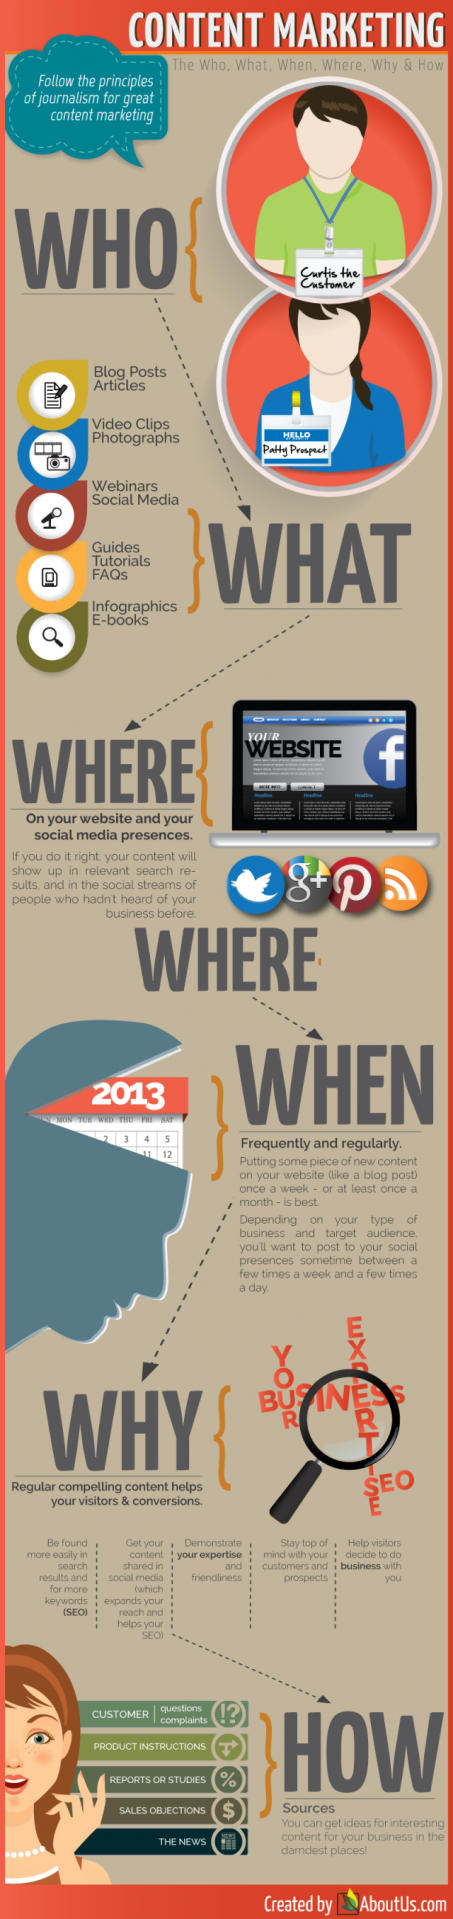 Aboutus contentmarketing infographic